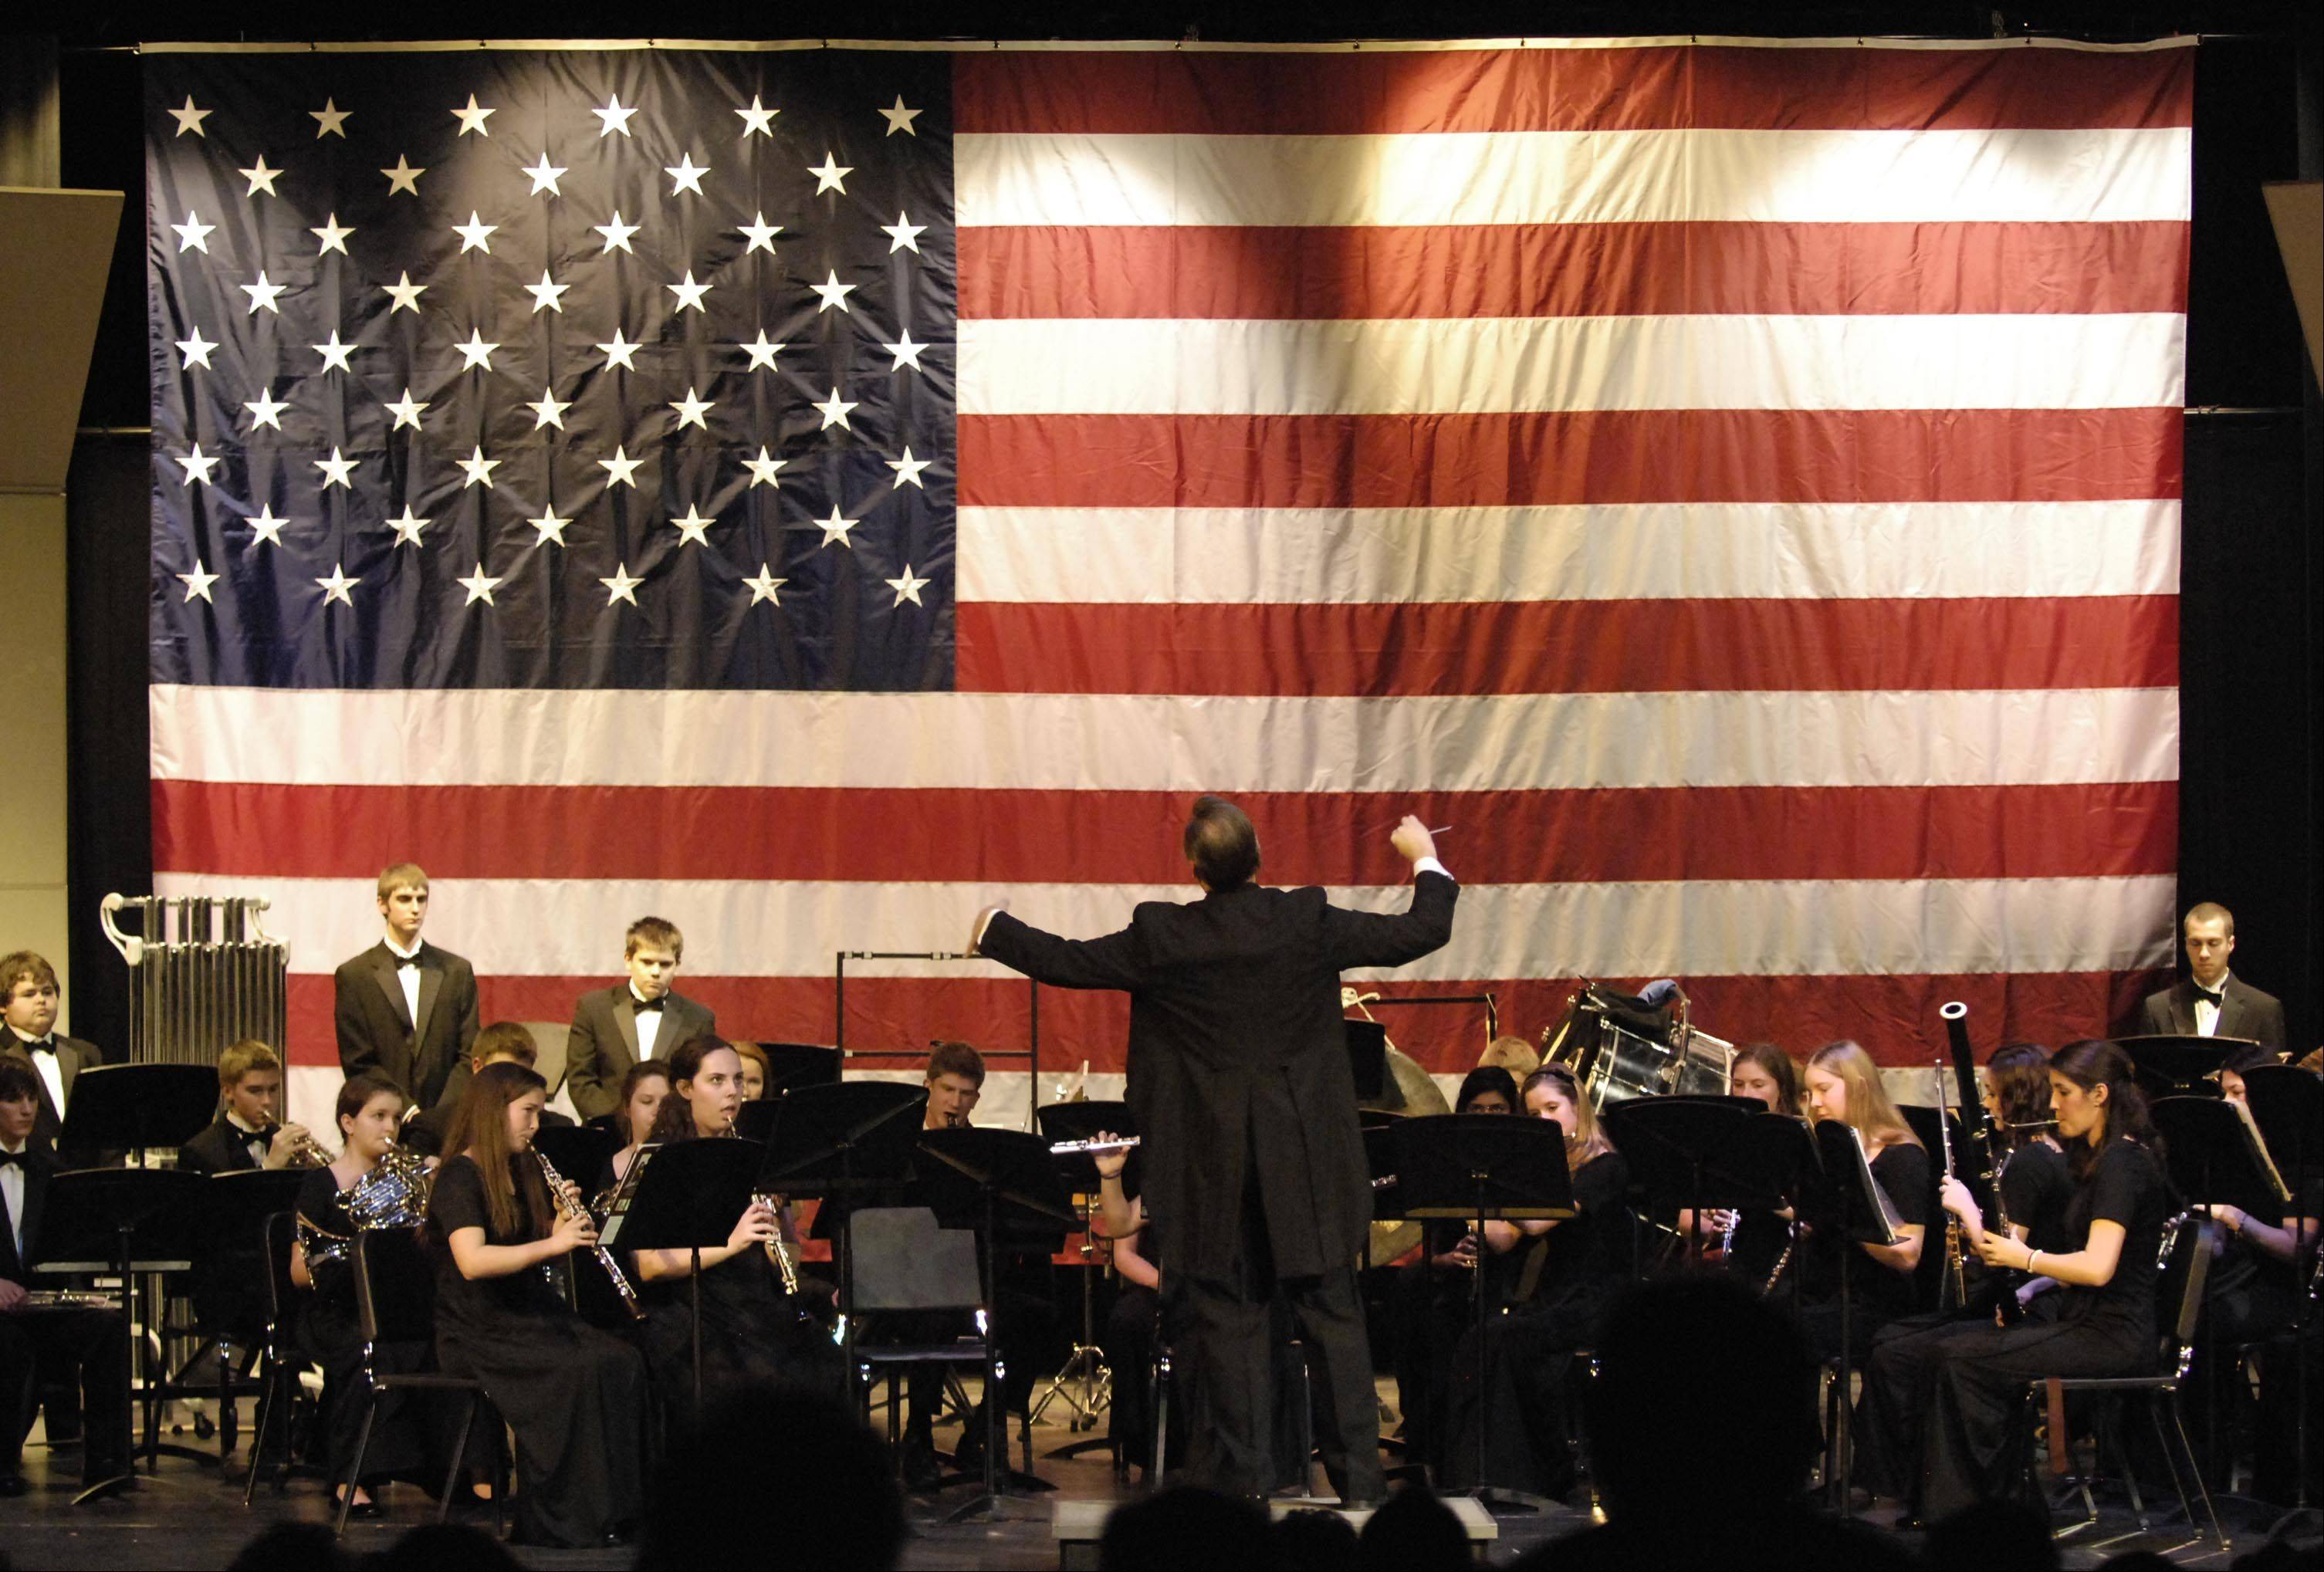 Conductor Brian Wis leads the Wind Symphony Sunday at the Sixth Annual Veterans Celebration Concert for Veterans Day at St. Charles North High School.